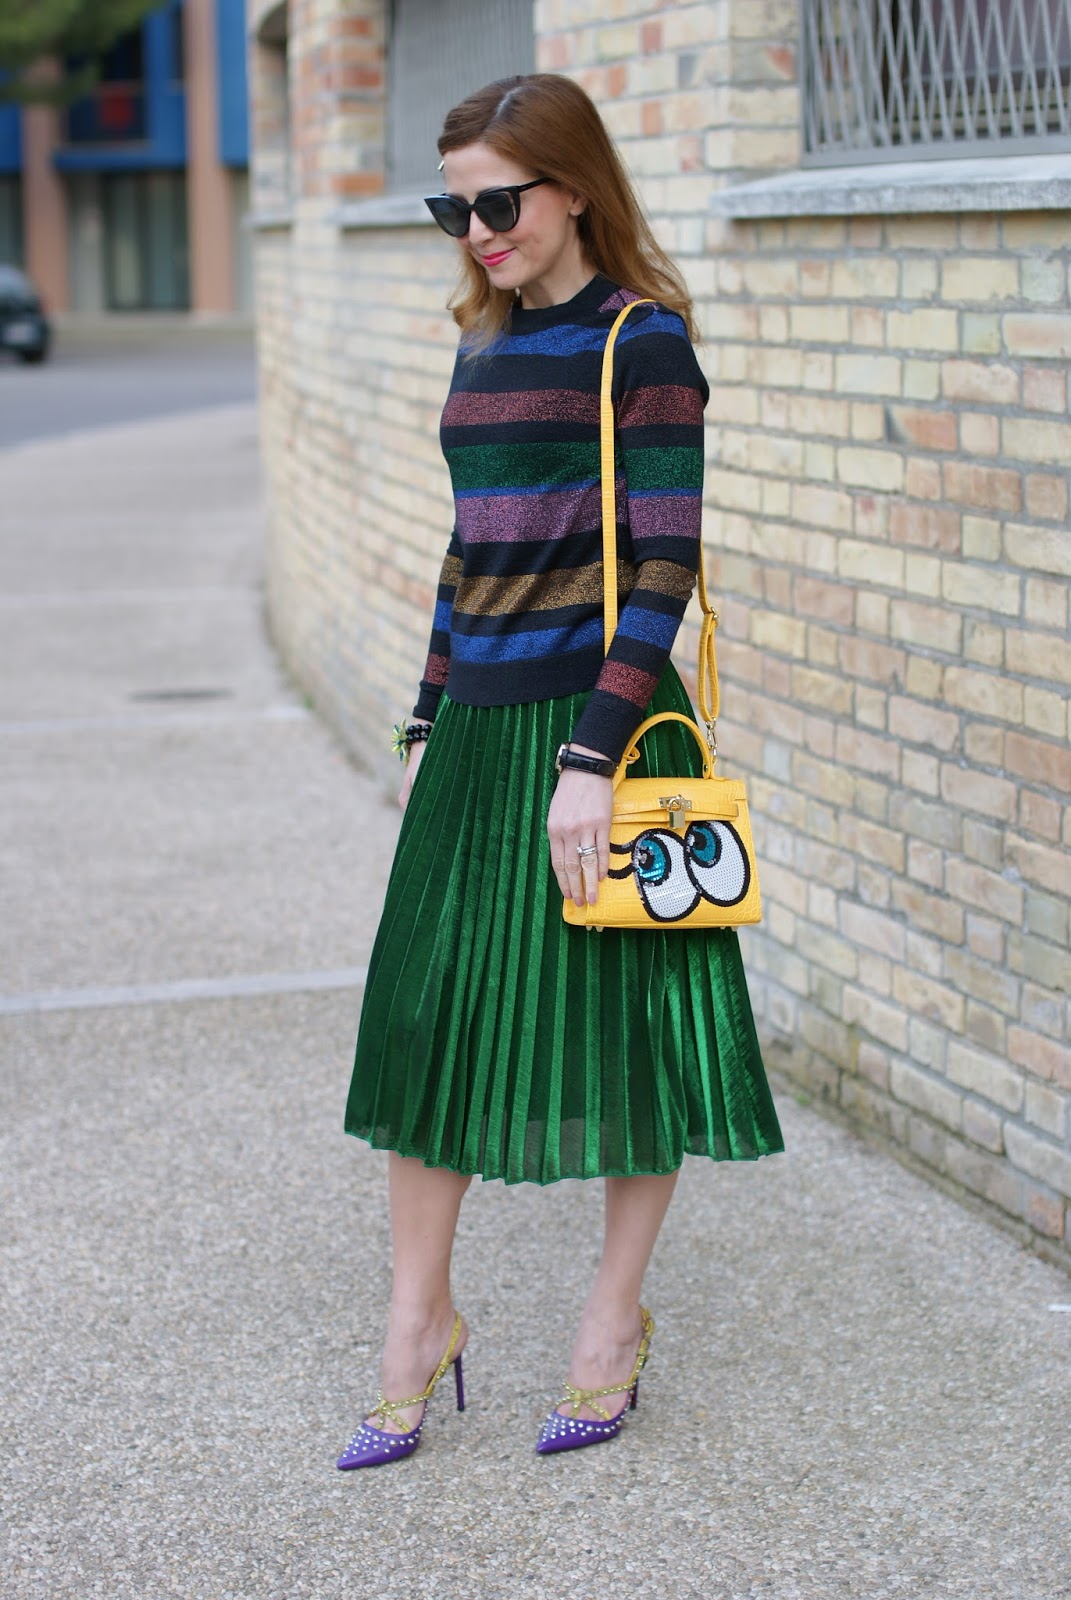 Fendi sunglasses, Gucci style pleated skirt, striped metallic blouse, Cesare Paciotti heels on Fashion and Cookies fashion blog, fashion blogger style